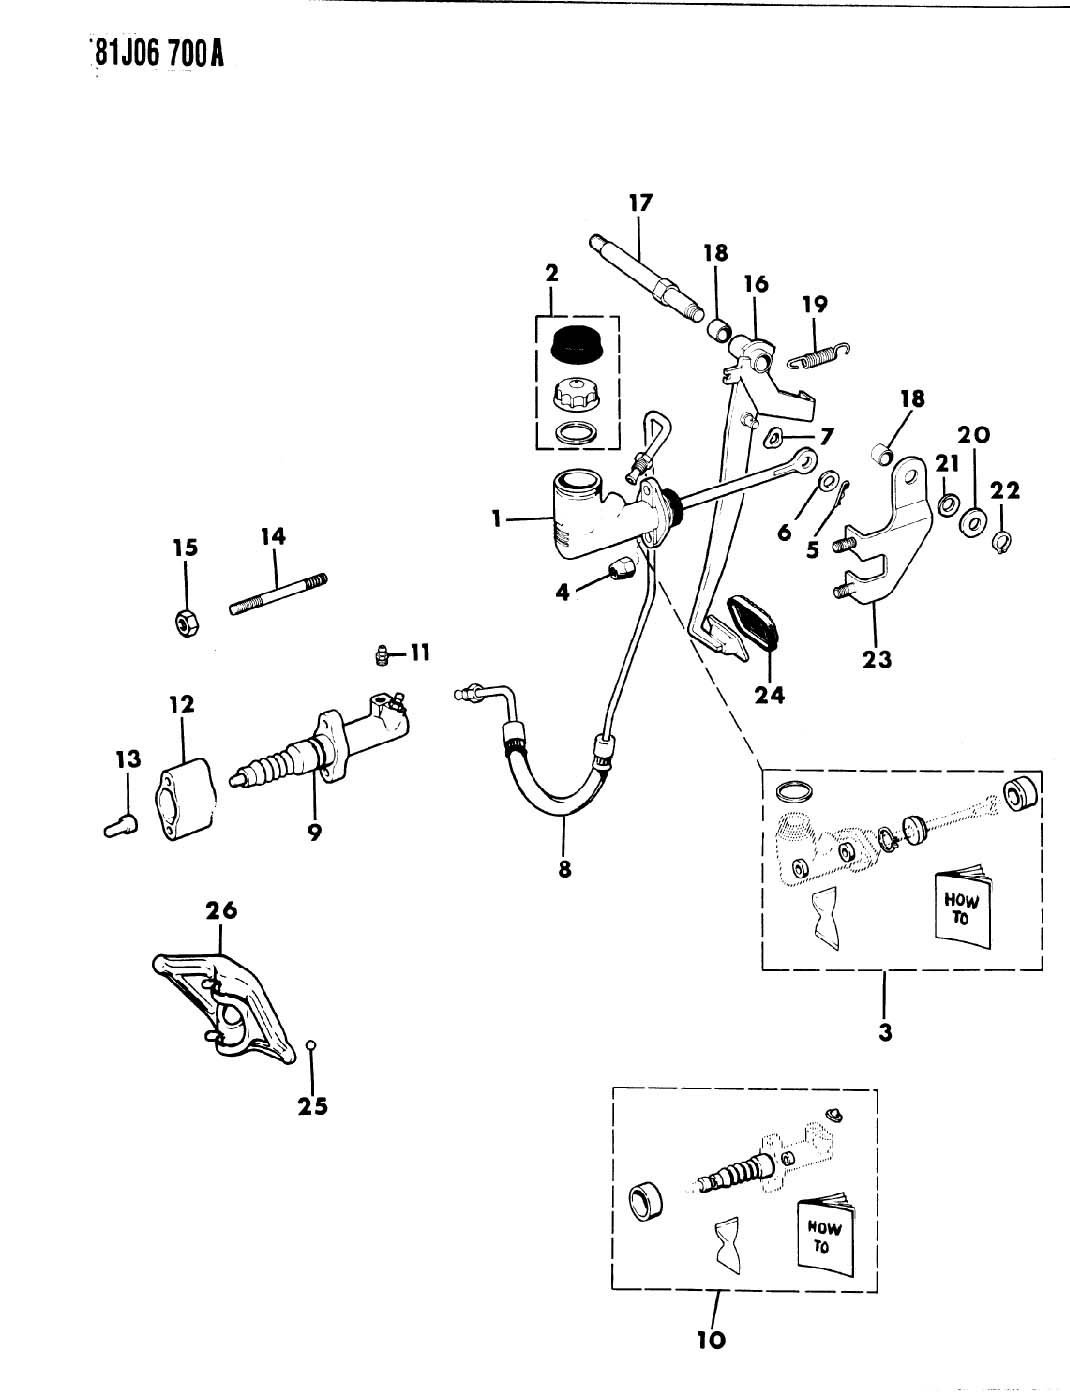 4 0 jeep engine camshaft diagram additionally 1990 jeep wrangler wiring schematic as well repairguidecontent additionally